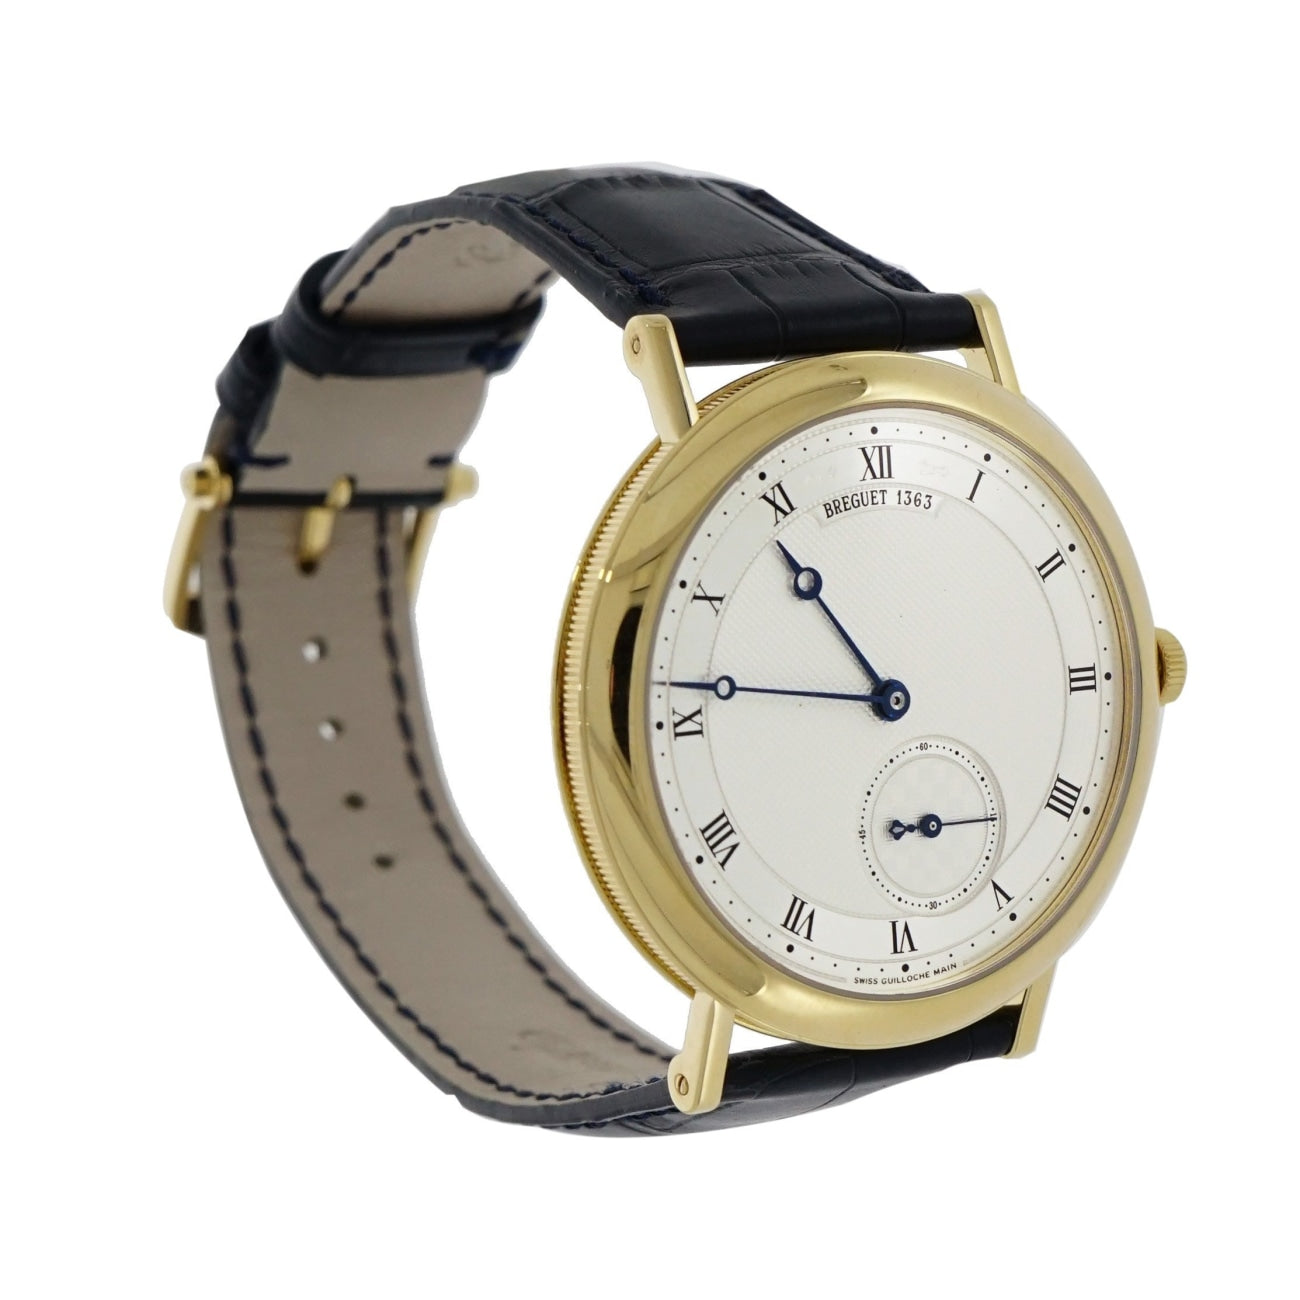 Pre-Owned Breguet Pre-Owned Watches - Classic 18 Karat Yellow Gold | Manfredi Jewels